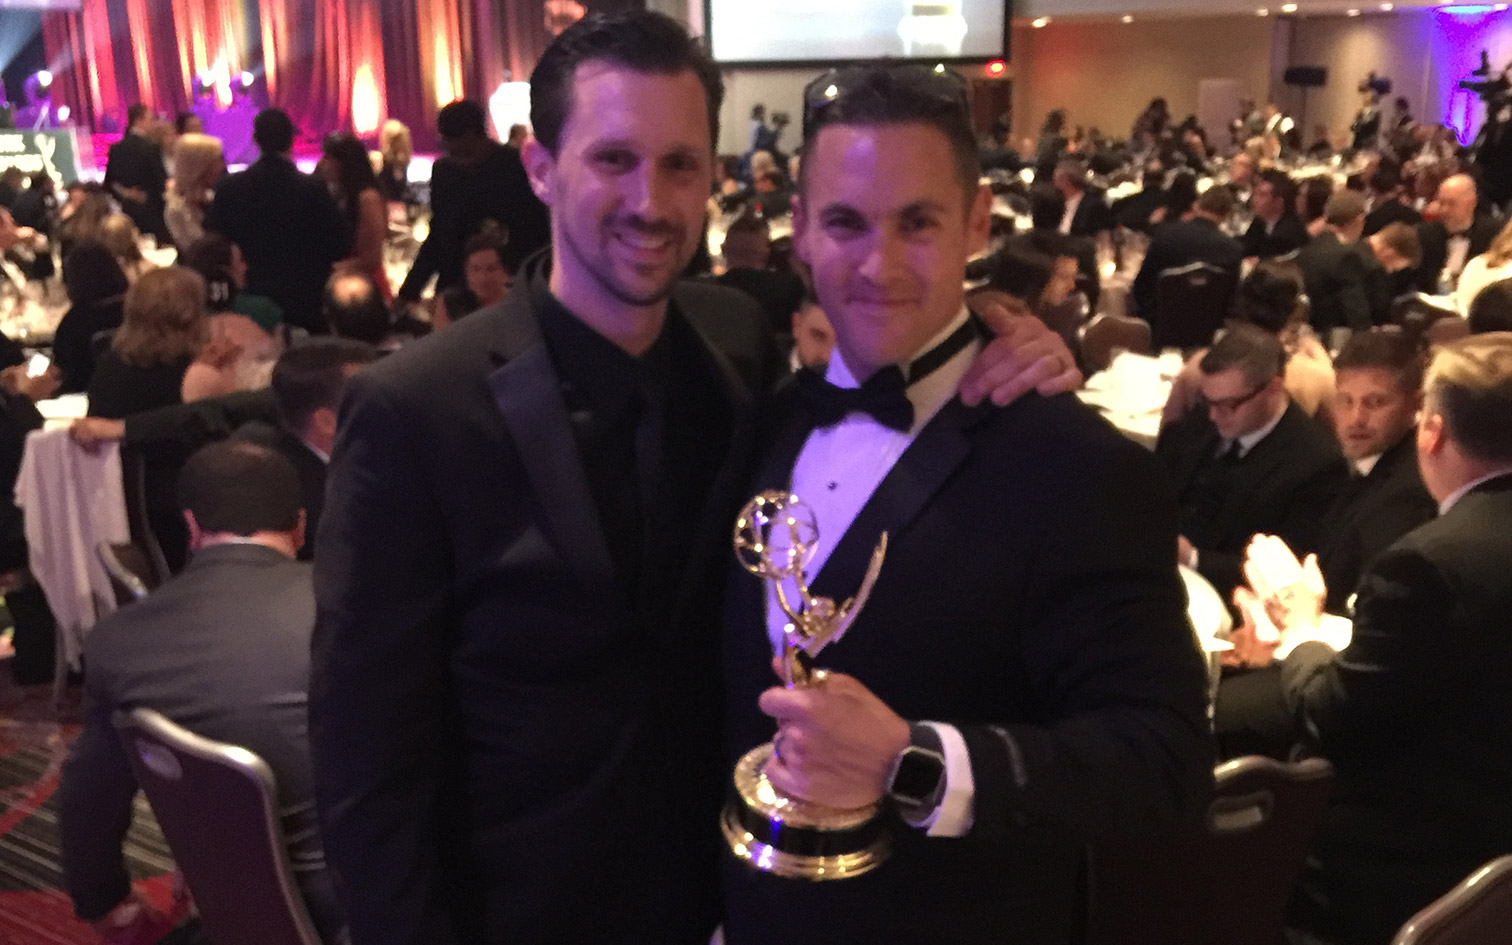 Anthony Carrozzo and Matt Cassella win an Emmy